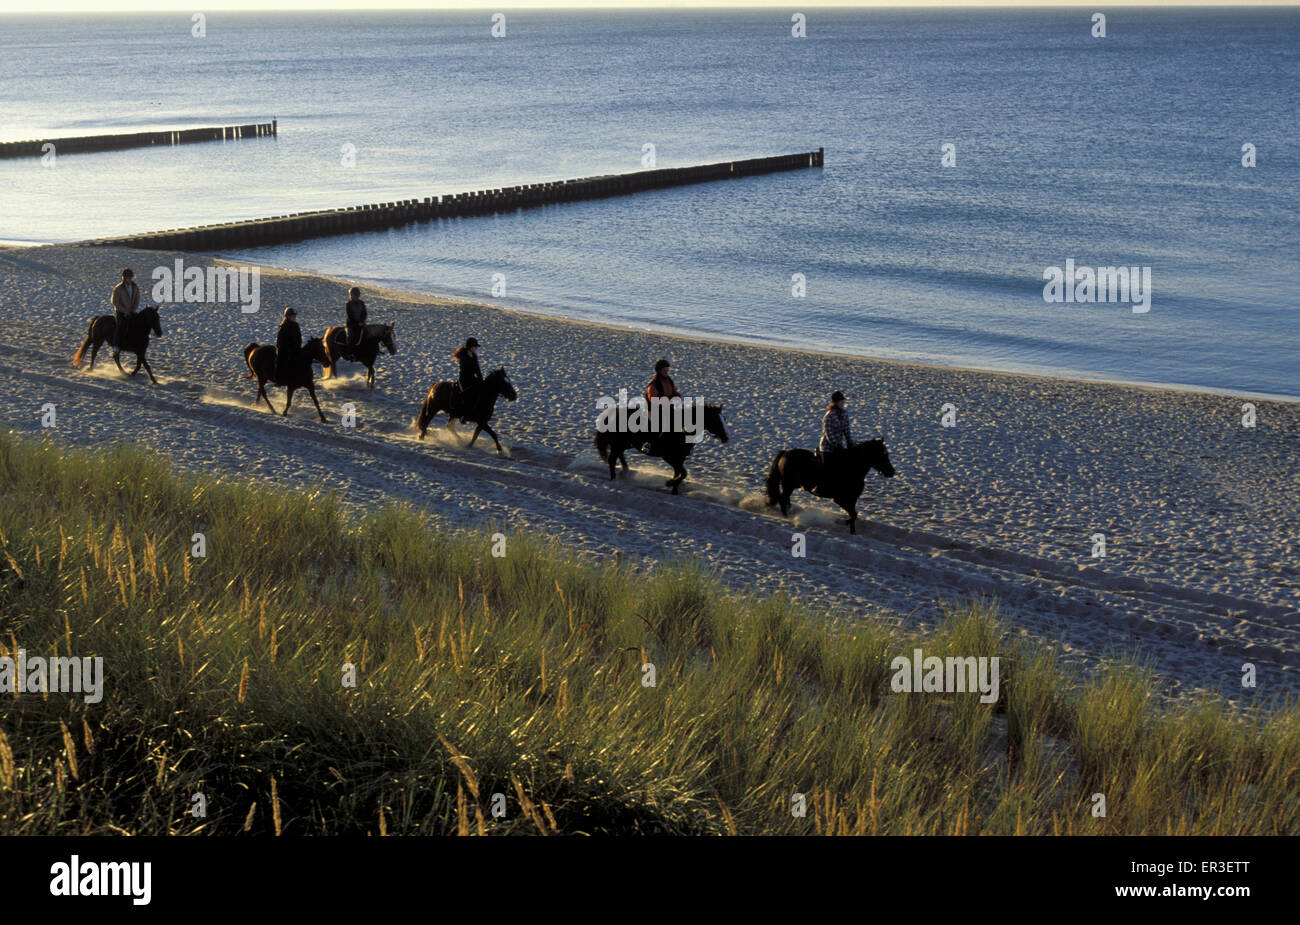 DEU, Germany, Mecklenburg-Western Pomerania, horsemen at the beach at Ahrenshoop at the Baltic Sea.  DEU, Deutschland, Stock Photo